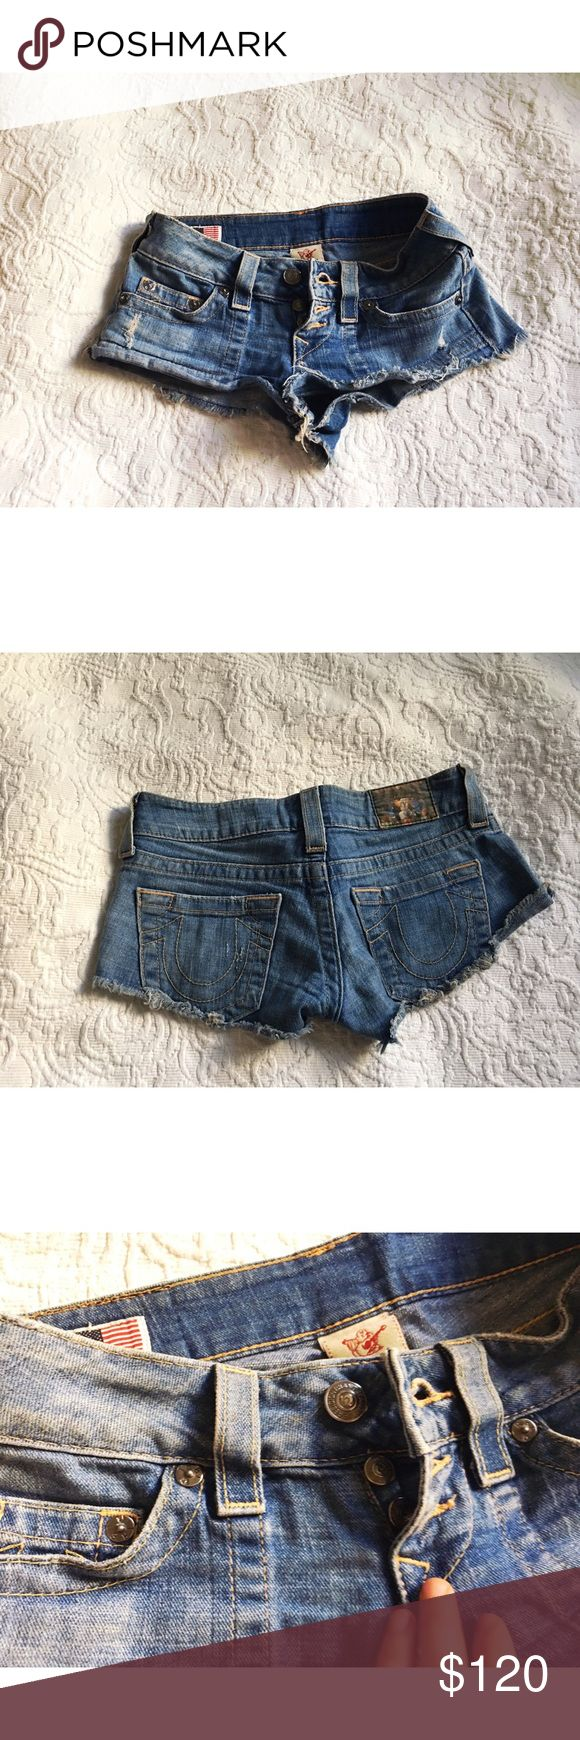 True Religion Denim Cut Off Daisy Duke Shorts 24 ✨(❁´◡`❁) ωḙℓḉ✺Պḙ (❁´◡`❁)✨       🦋Description:    •Cute Denim    •Cutoff - Daisy Duke style (definitely shows under bum)   •Frayed hems      ✨       🦋Brand: True Religion       🦋Size: 24 / 00       🦋Condition: Good preowned shape. Washed and dried.        (please refer to all photos Don't hesitate to ask ANY and ALL question before Bidding/Buying) True Religion Shorts Jean Shorts